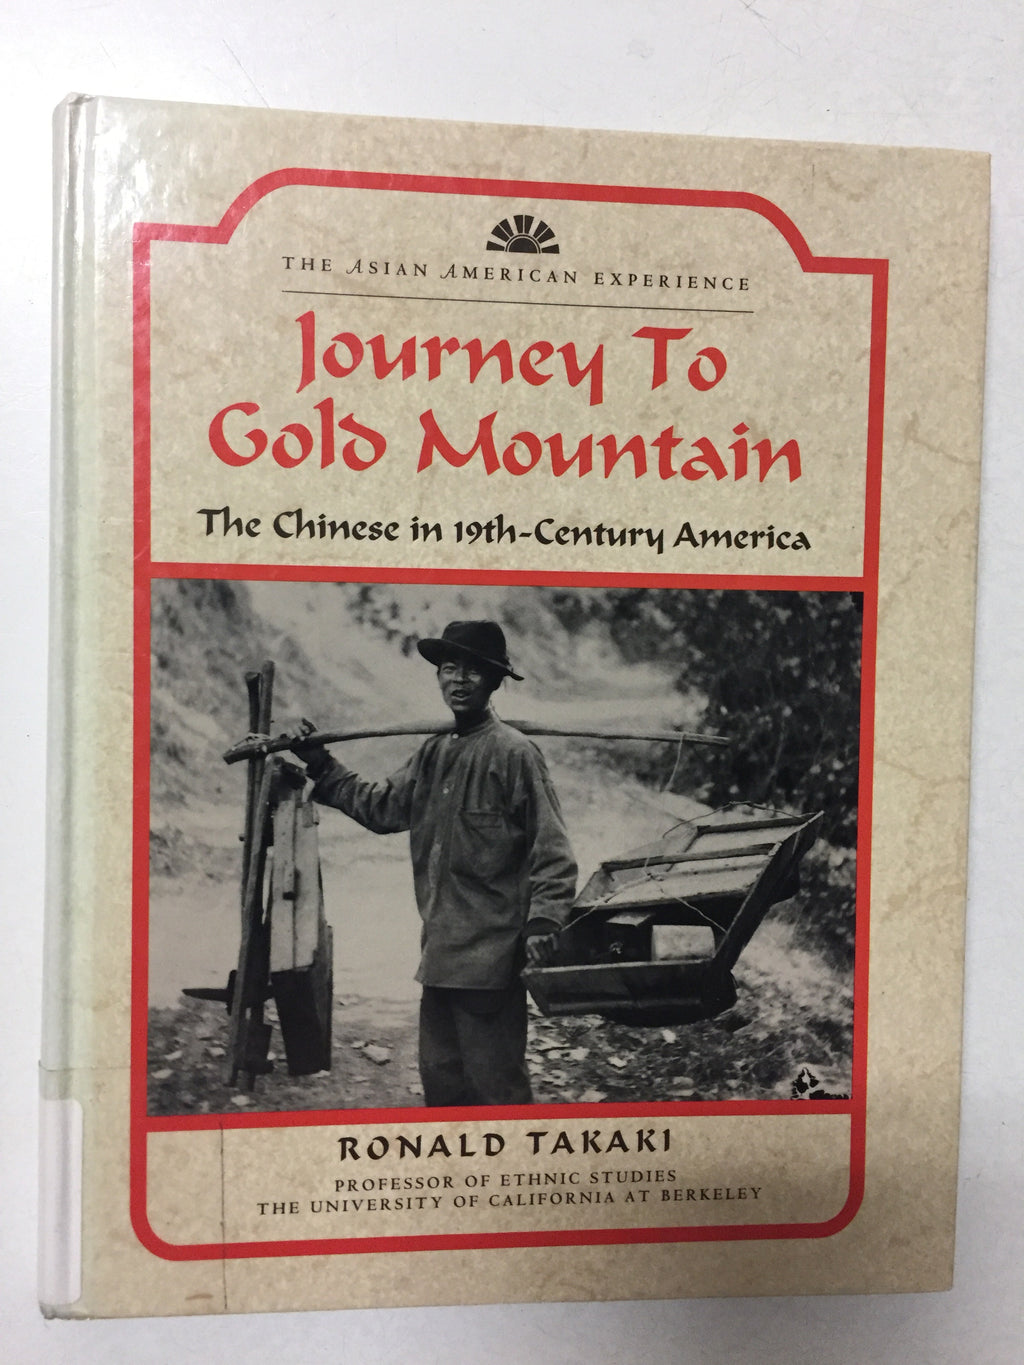 Journey To Gold Mountain The Chinese in 19th-Century America - Slickcatbooks